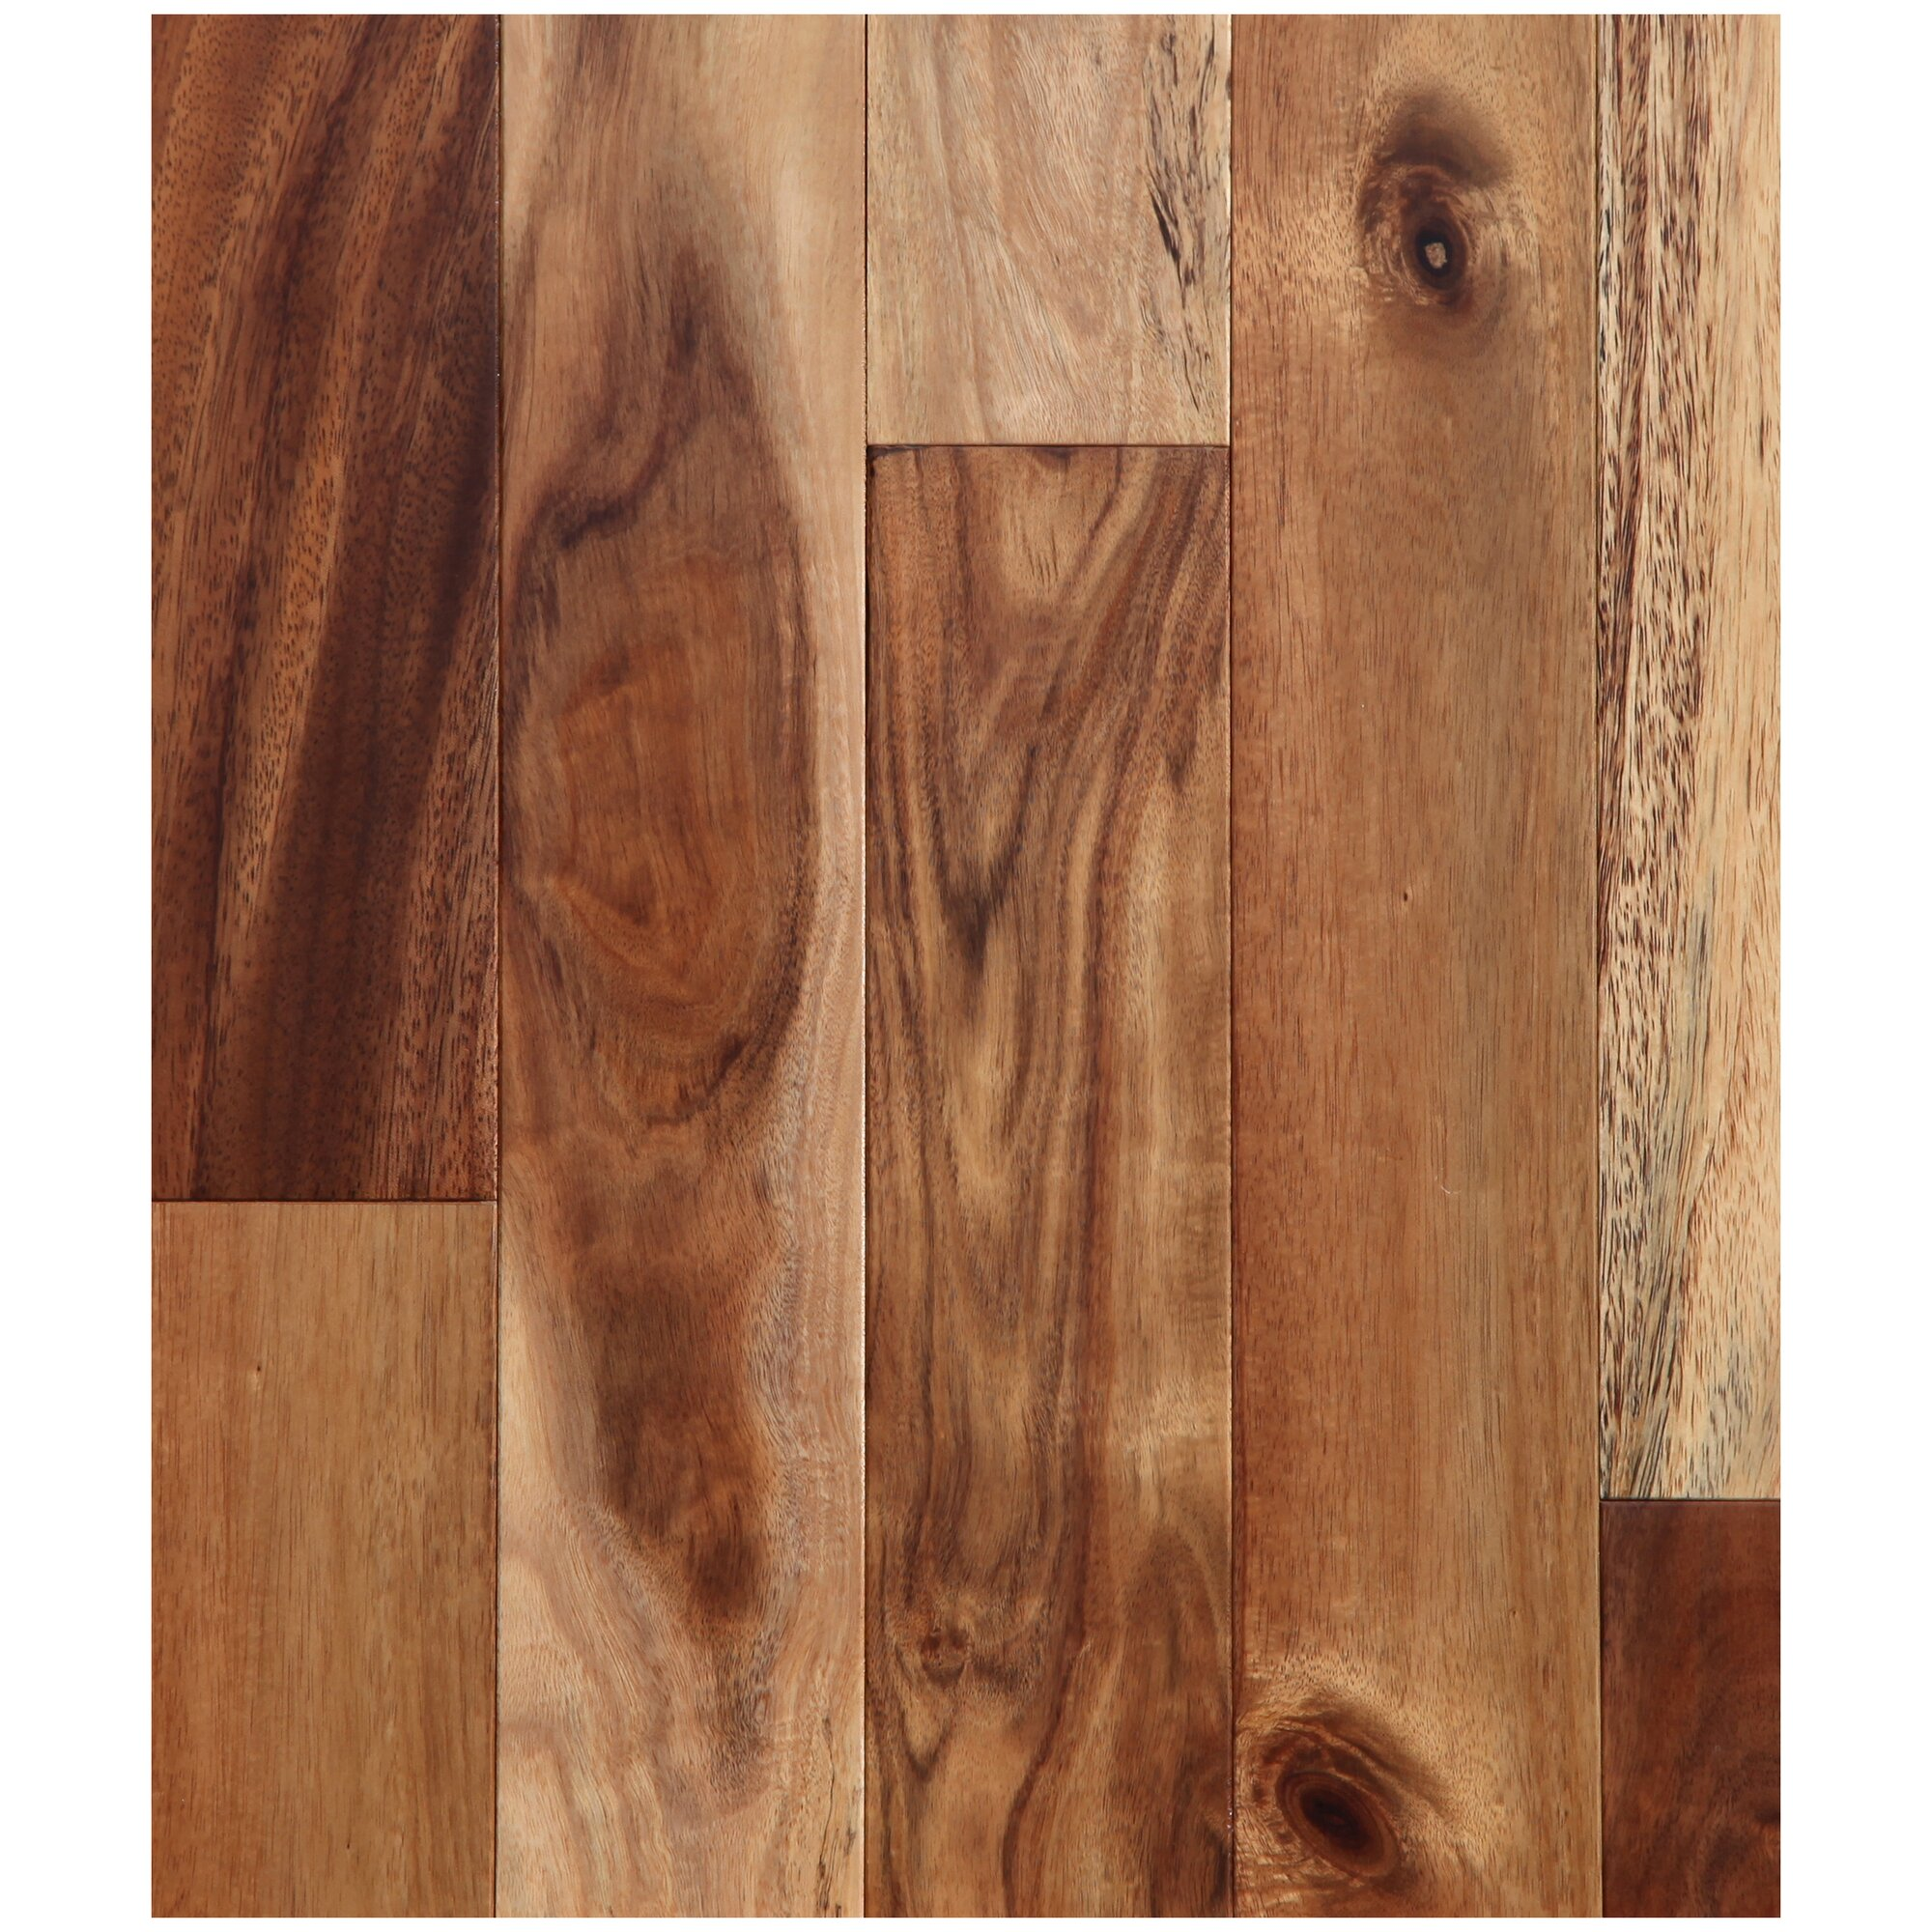 Acacia Hardwood Flooring Reviews 5 uluru sunset acacia hardwood flooring 4 34 Engineered Acacia Hardwood Flooring In Natural